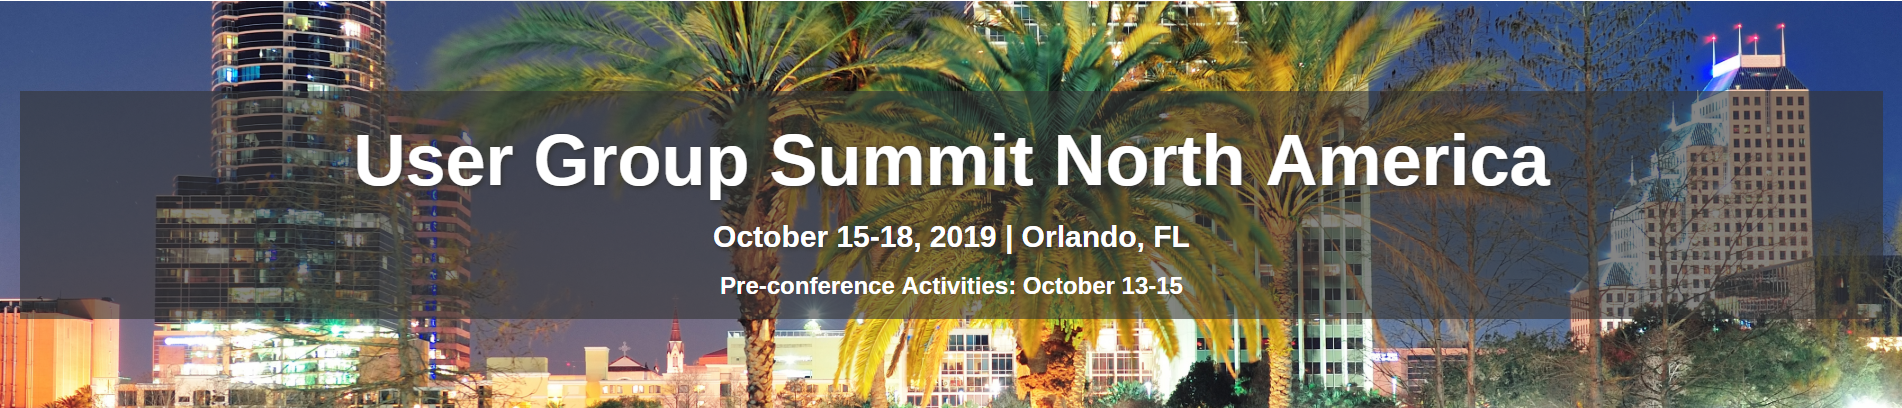 The Portal Connector at User Group Summit Orlando 2019